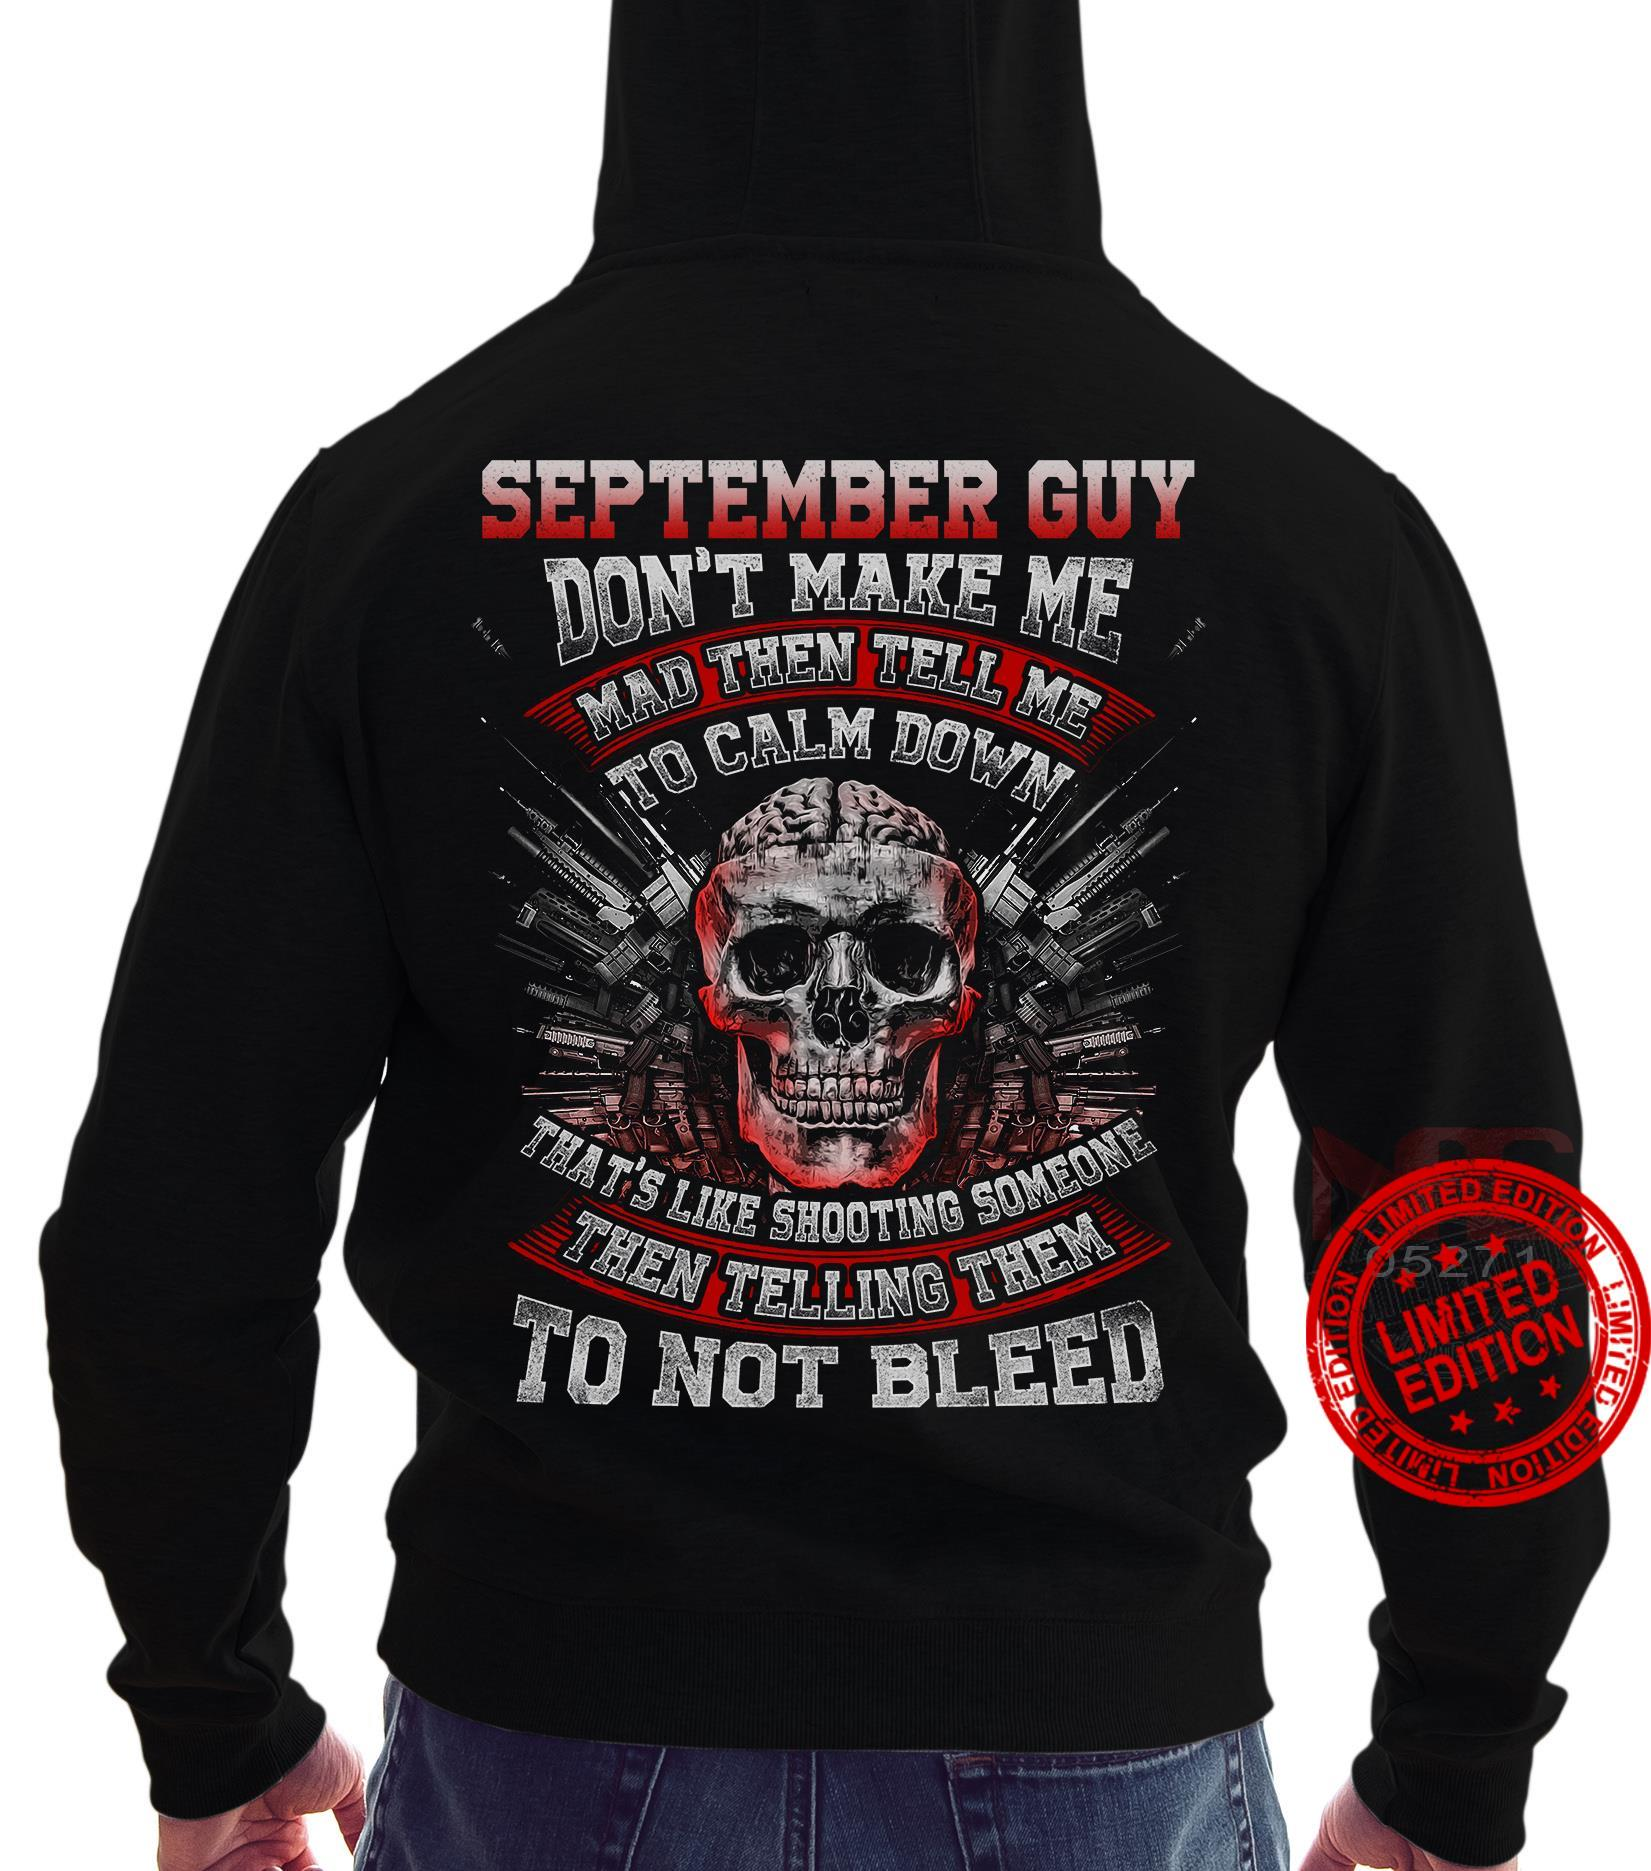 September Guy Don't Make Me Mad Then Tell Me To Calm Down Shirt